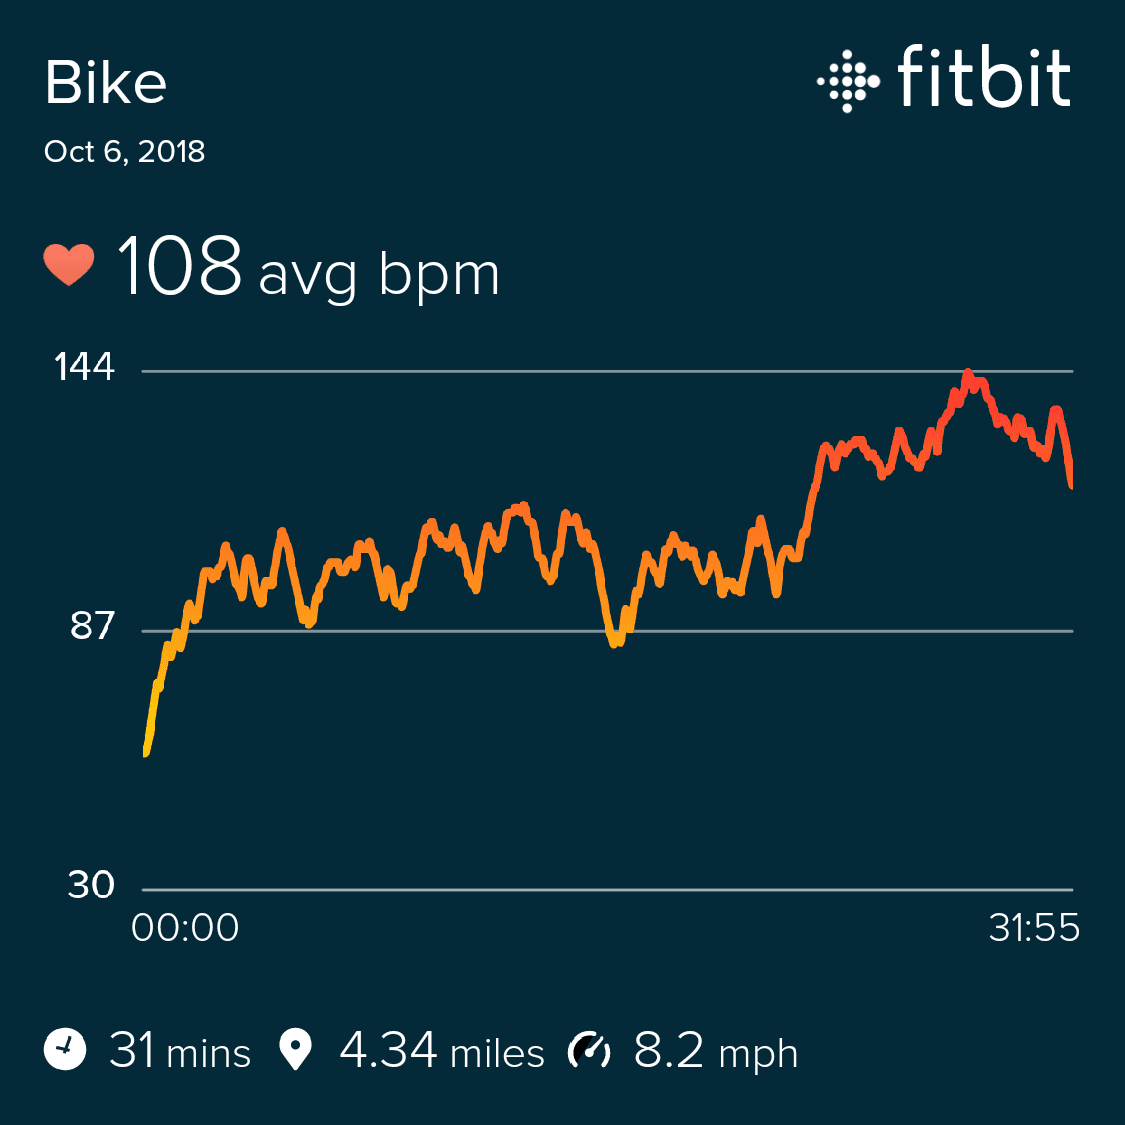 fitbit_sharing_4409650855495286662.png